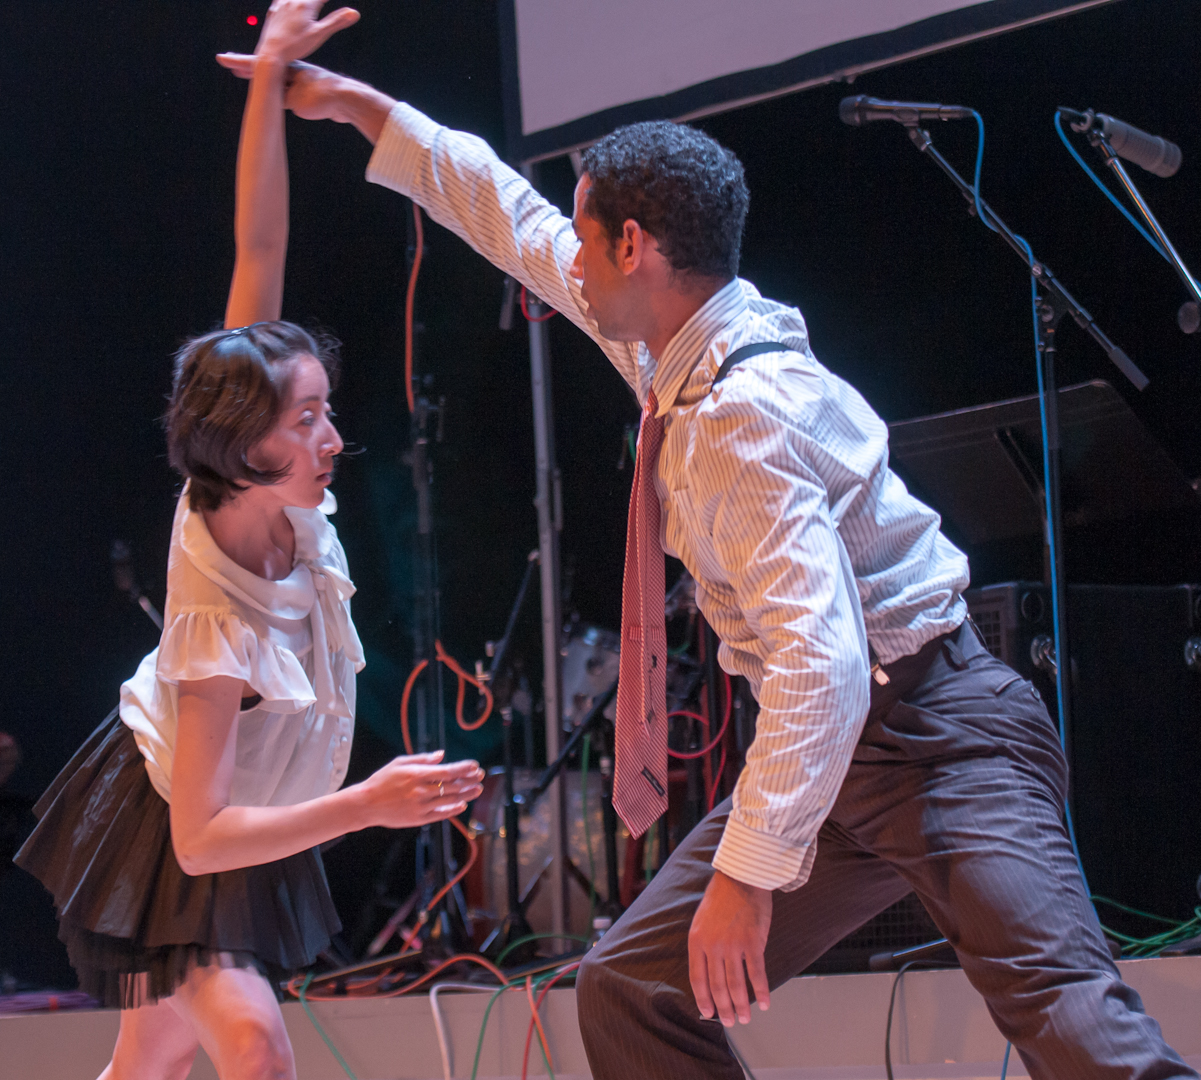 Misei Daimaru and Darion Smith with Jason Jordan / Knocknock Dance CO. At the Vision Festival 2012